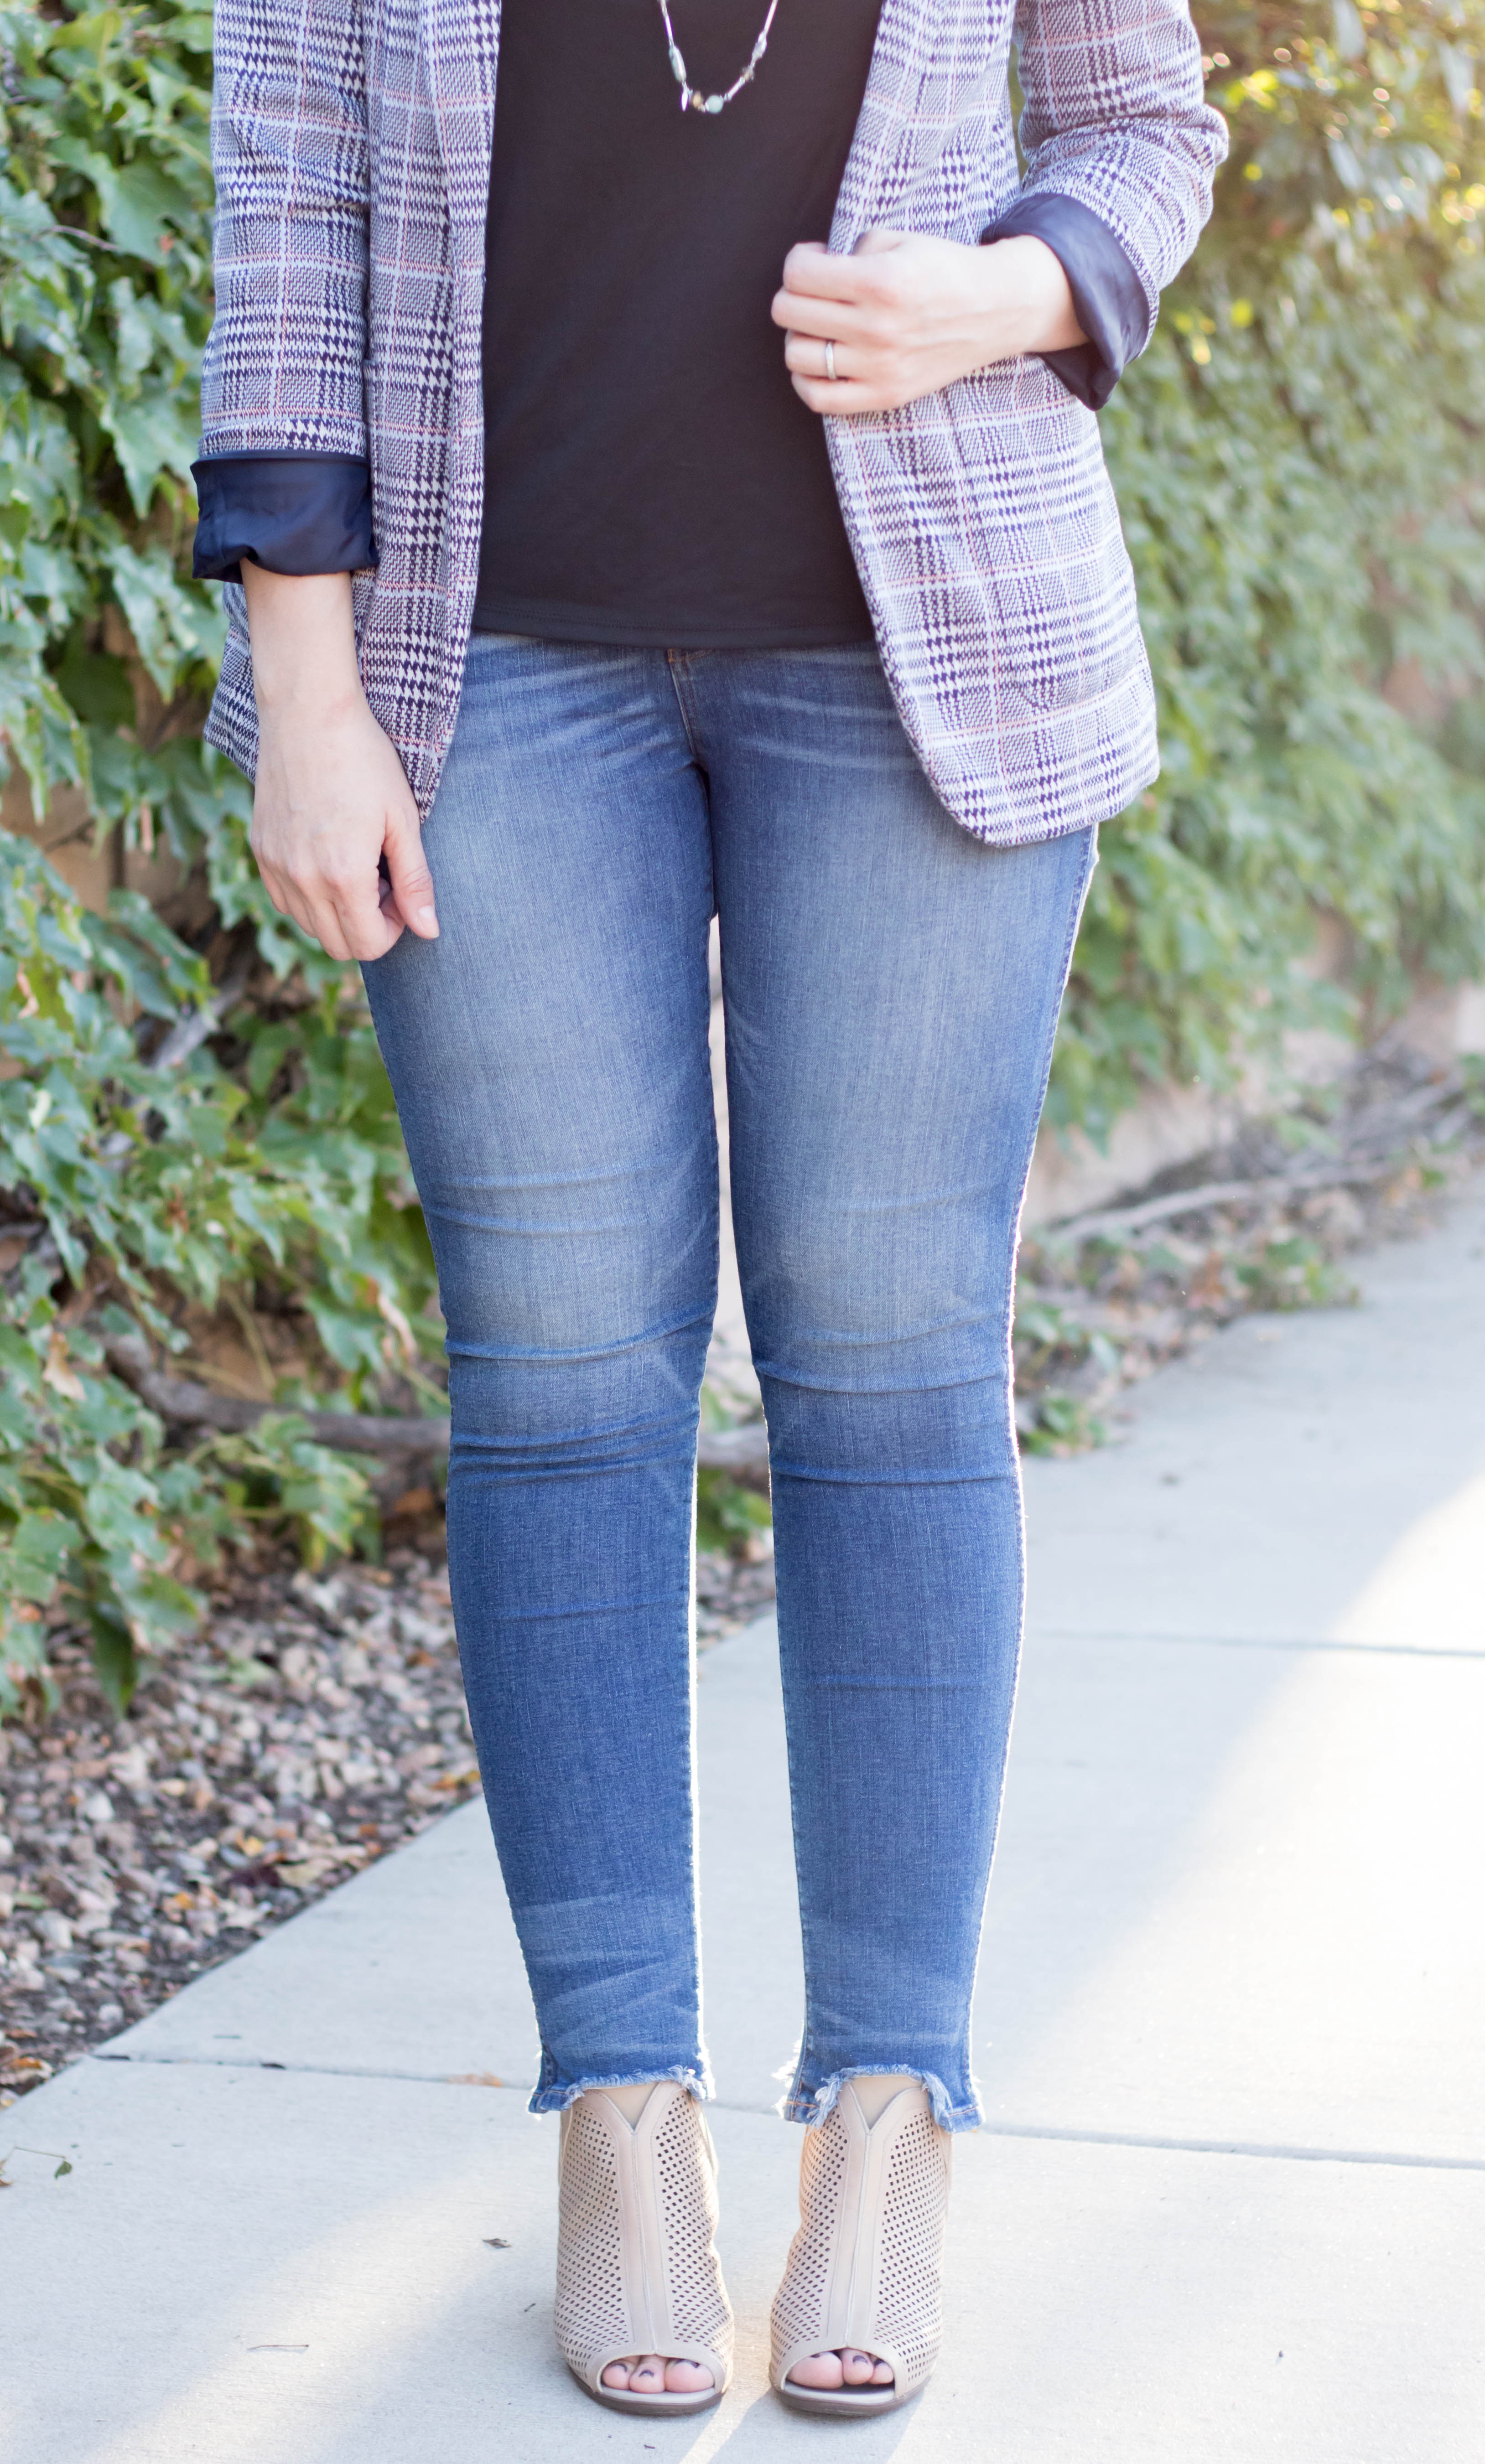 madewell high rise jeans #madewell #everydaymadewell #jeans #talljeans